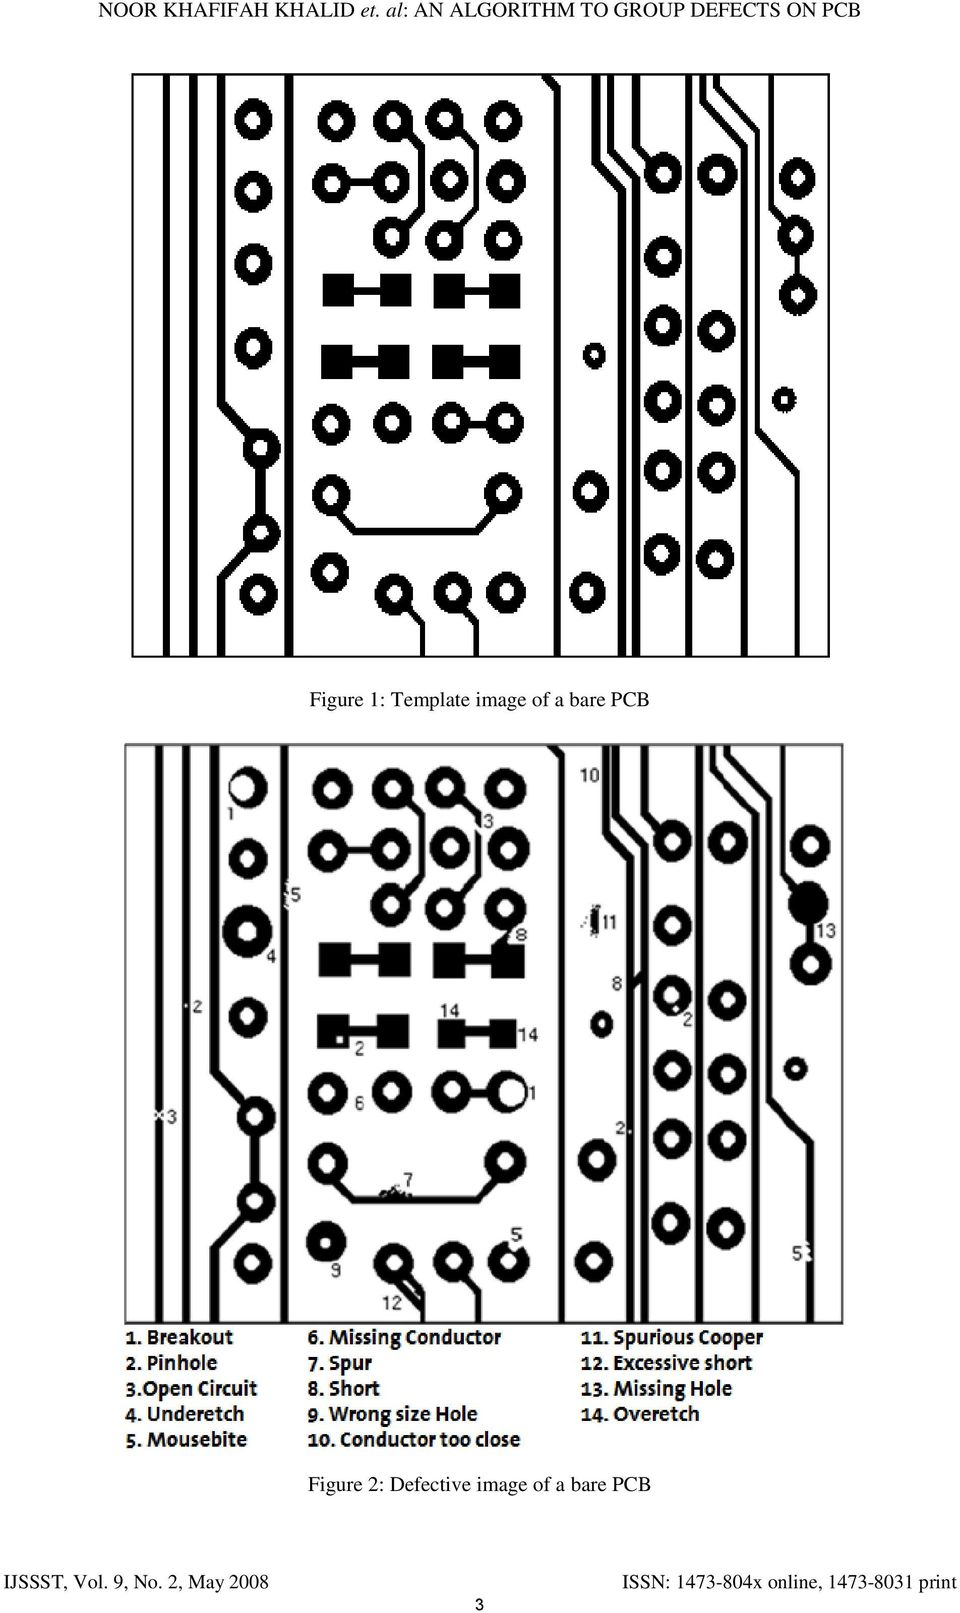 ON PCB Figure 1: Template image of a